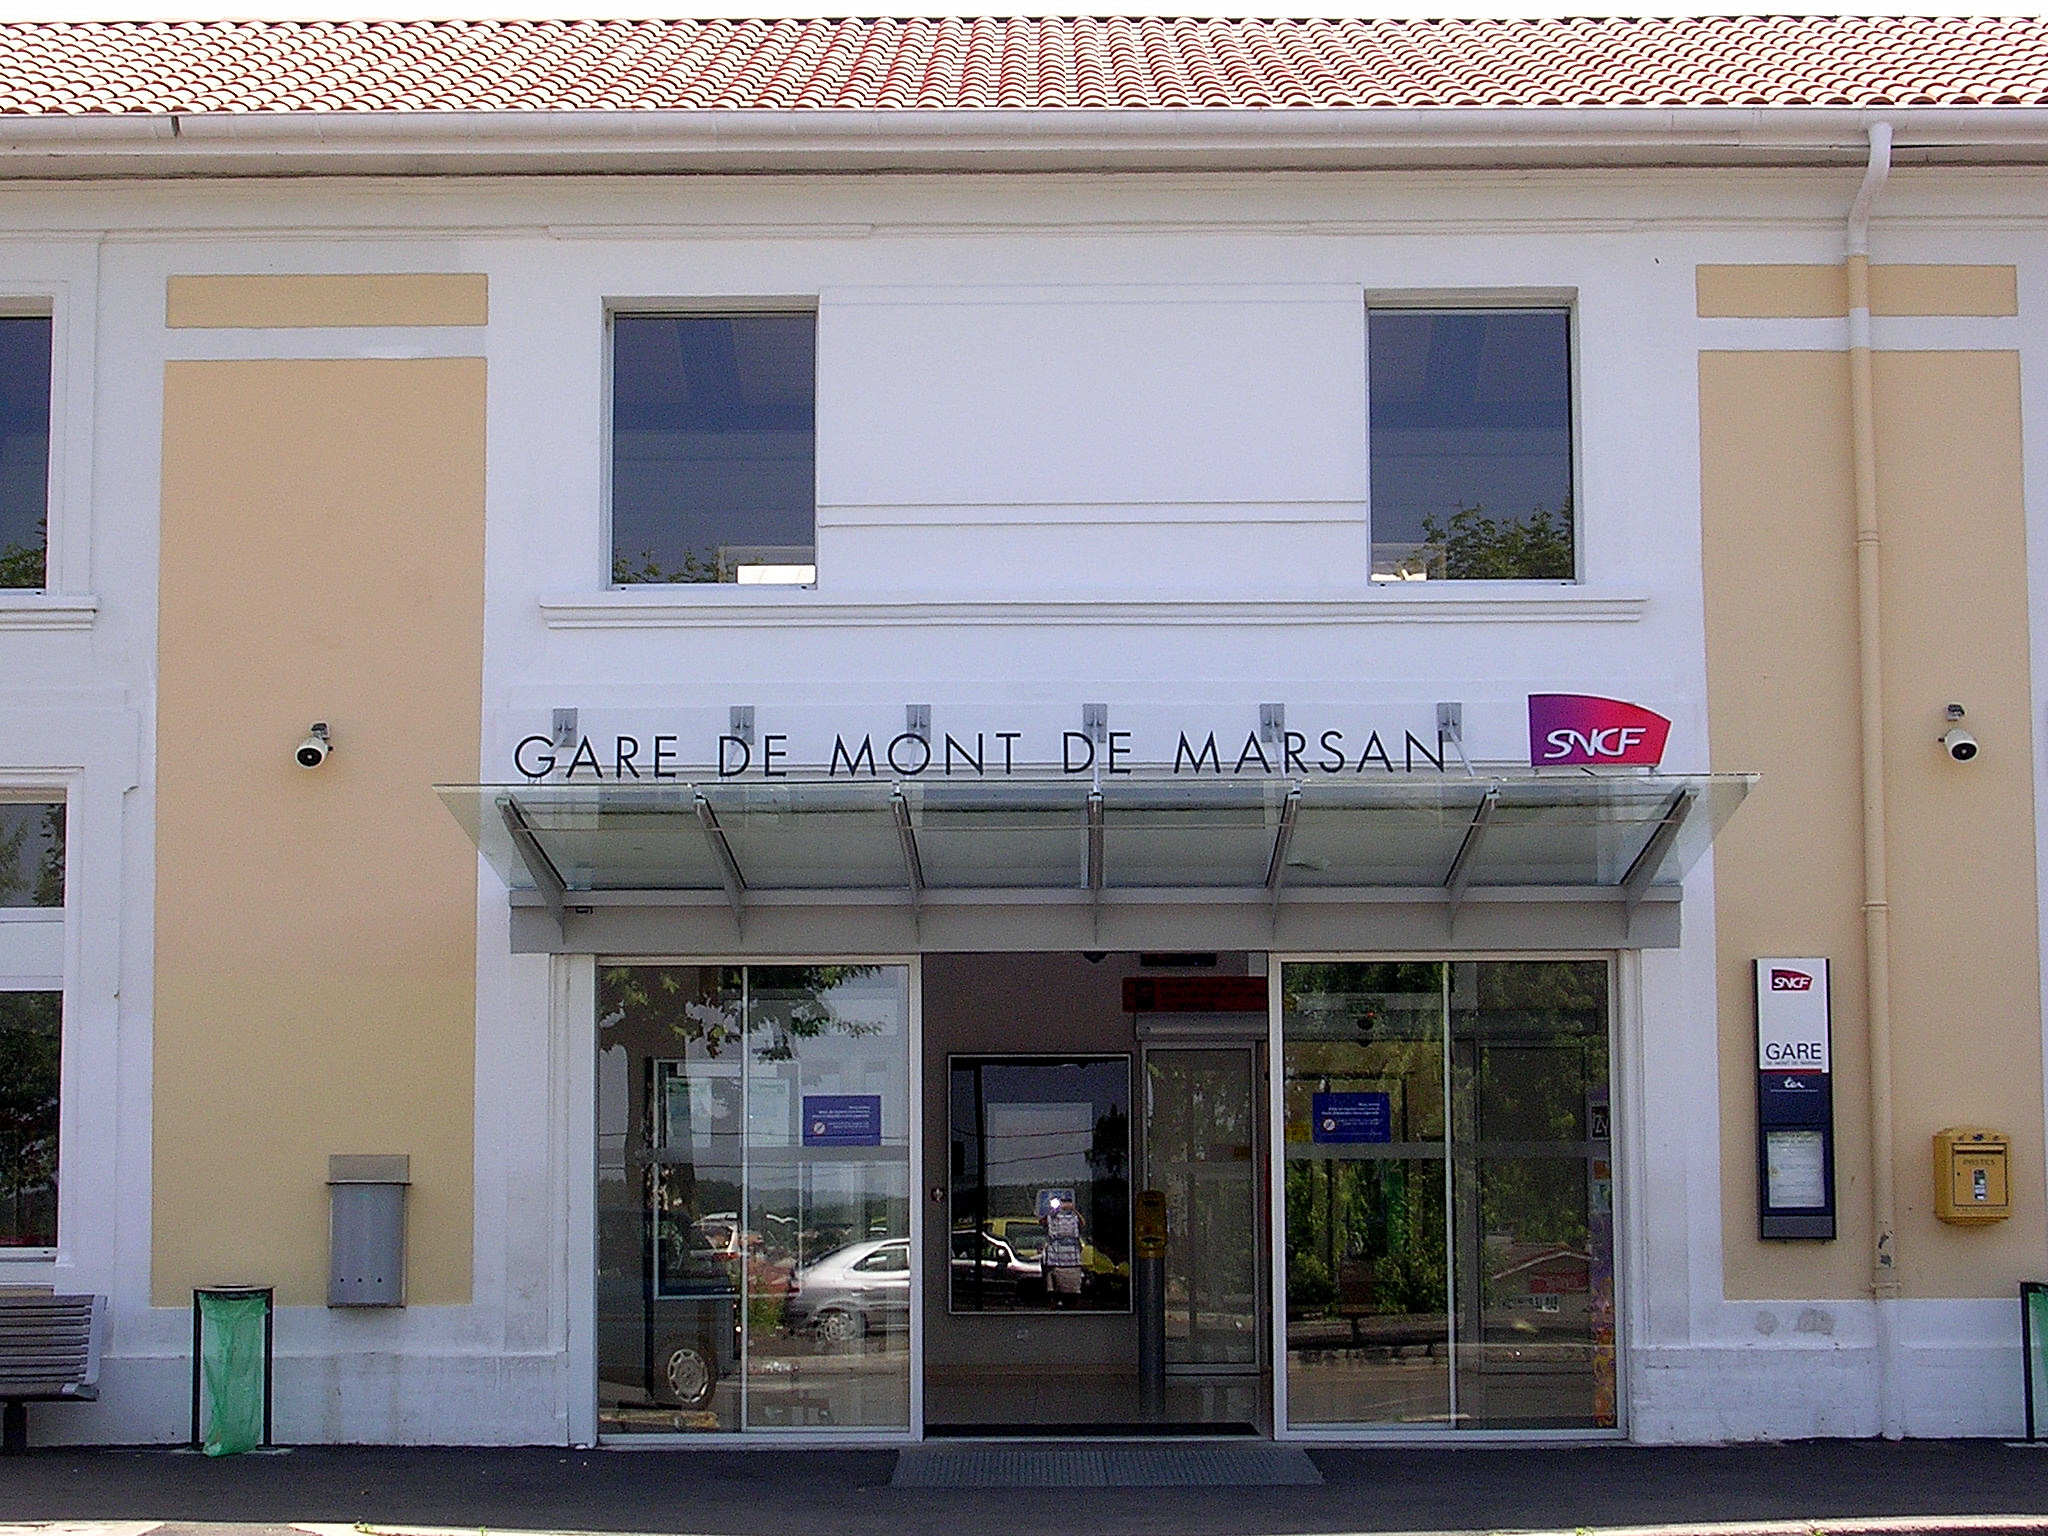 gare de mont de marsan wikiwand. Black Bedroom Furniture Sets. Home Design Ideas